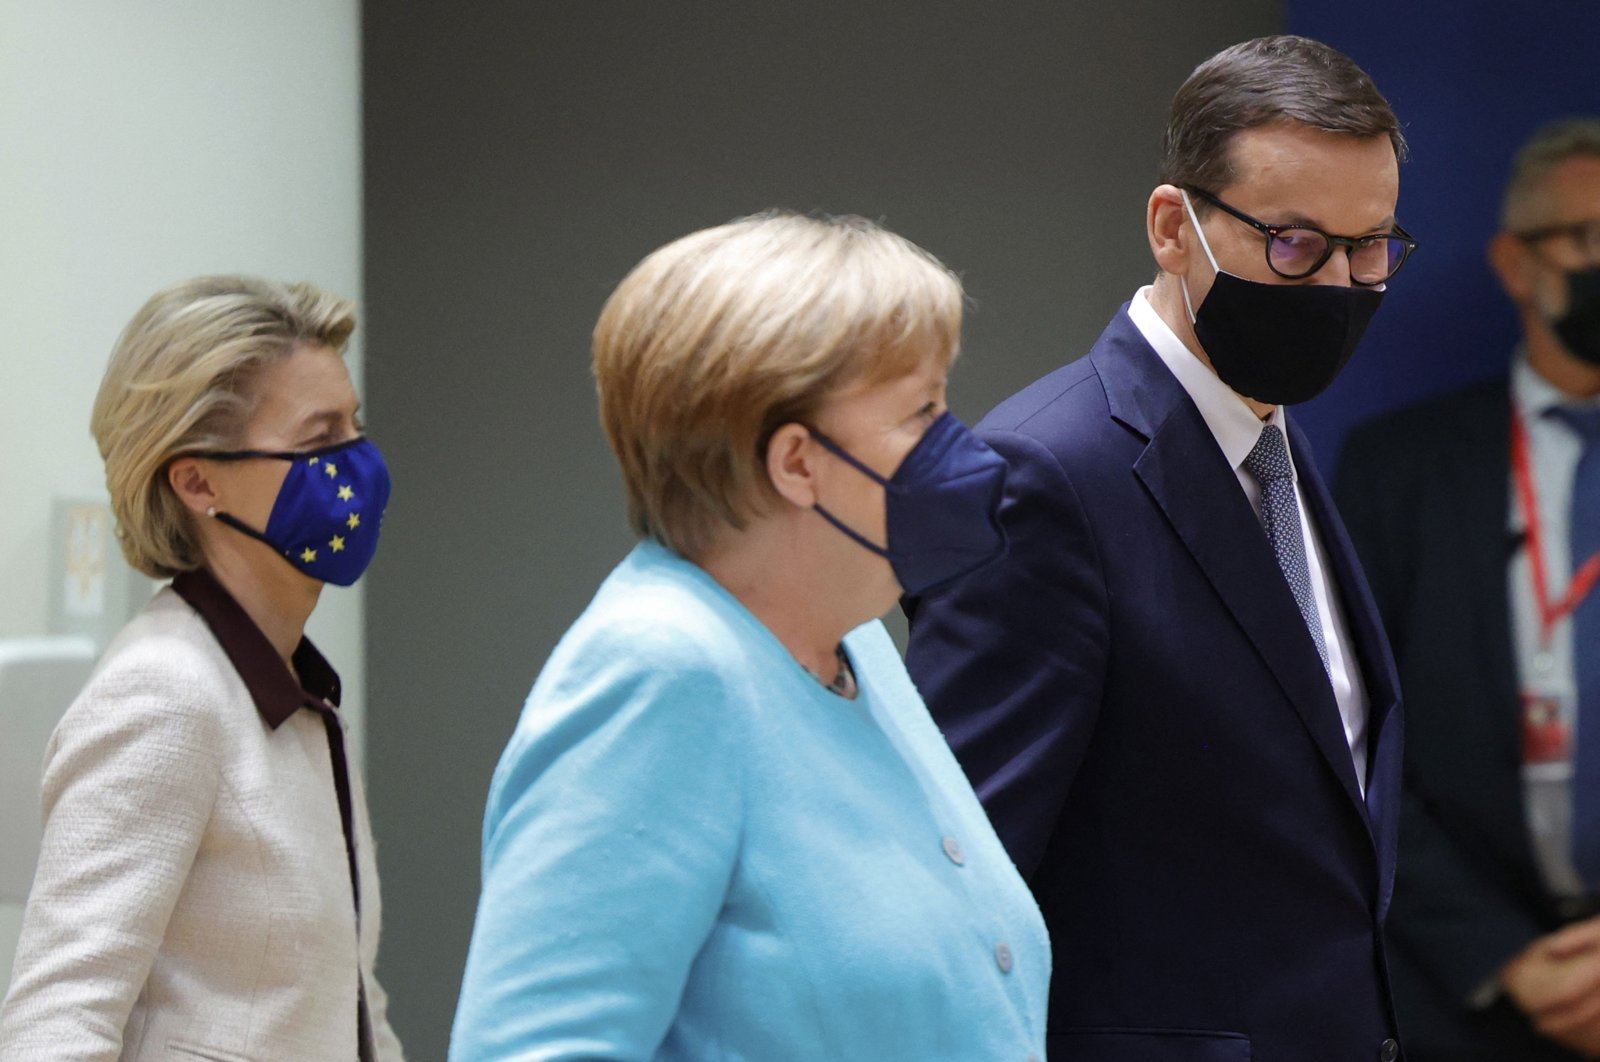 European Commission President Ursula von der Leyen (L) follows behind German Chancellor Angela Merkel (C) and Polish Prime Minister Mateusz Morawiecki on the first day of a European Union (EU) summit at the European Council Building in Brussels, Belgium, June 24, 2021. (AFP Photo)